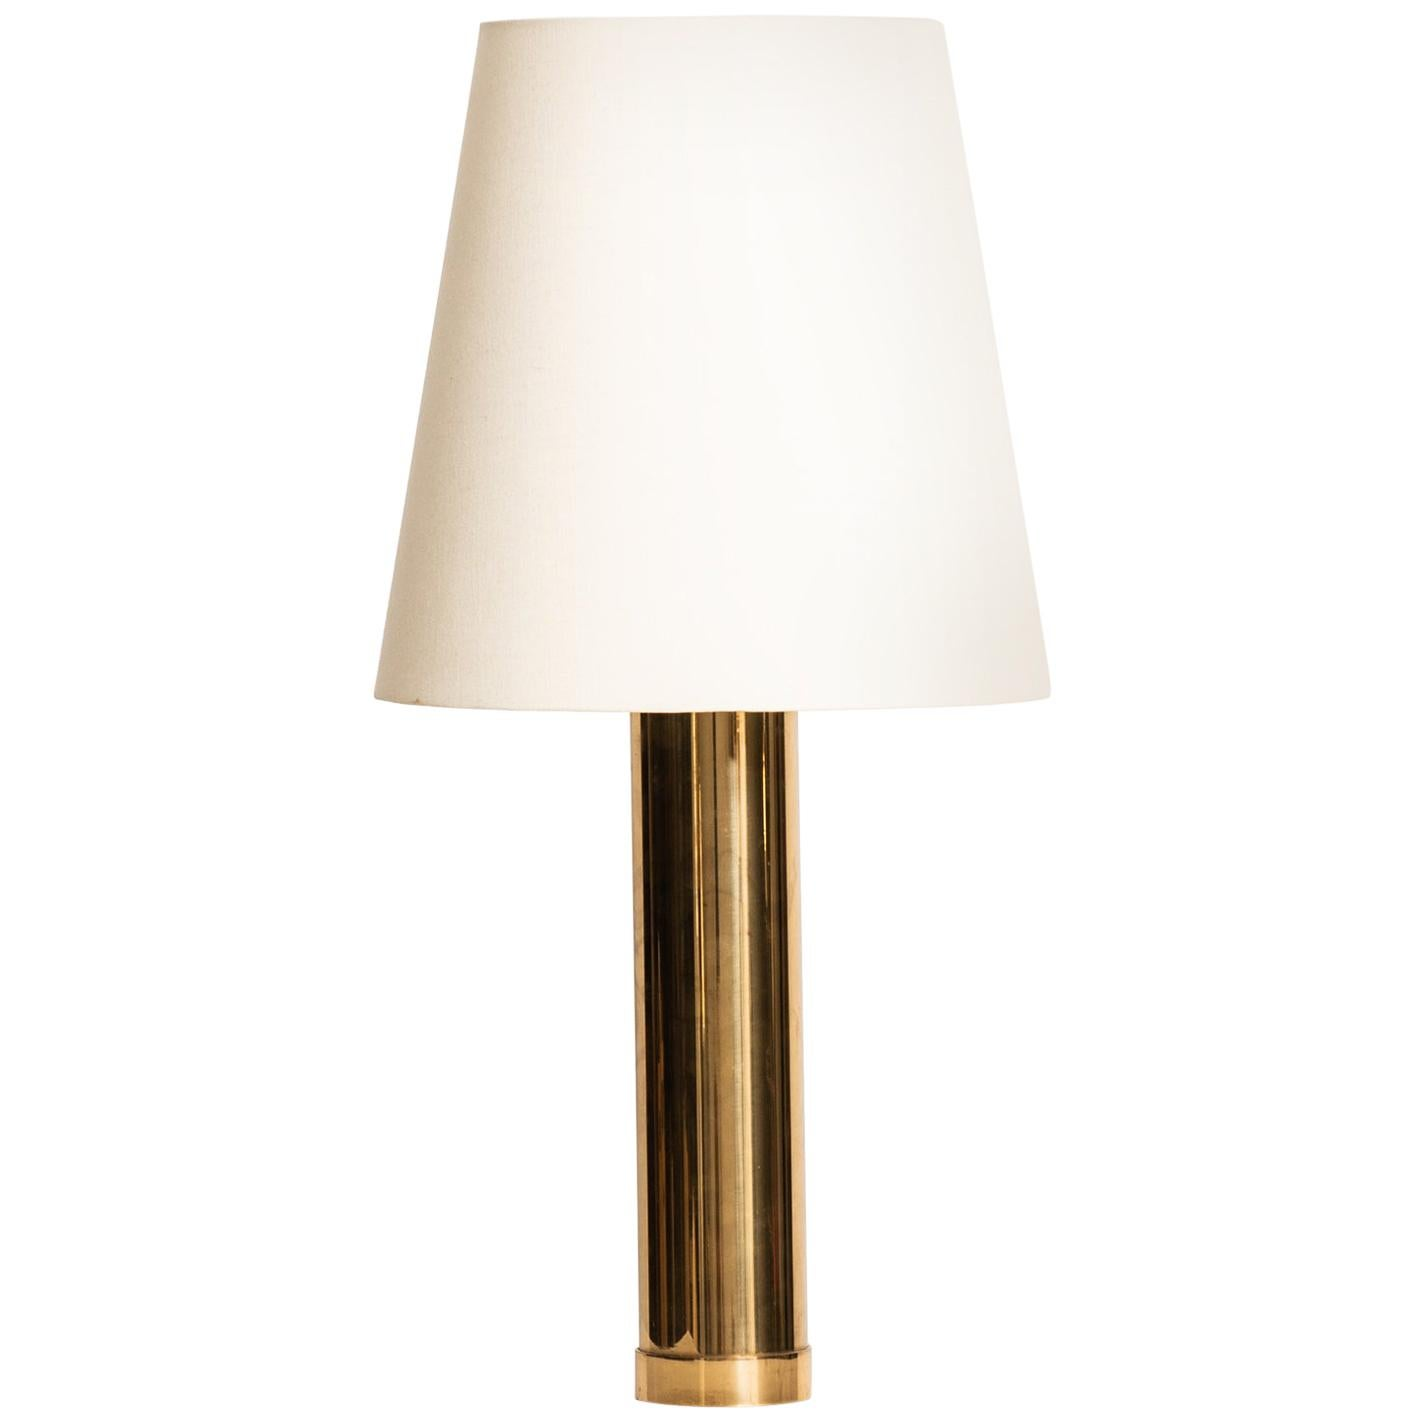 Table Lamps Model B-010 Produced by Bergboms in Sweden